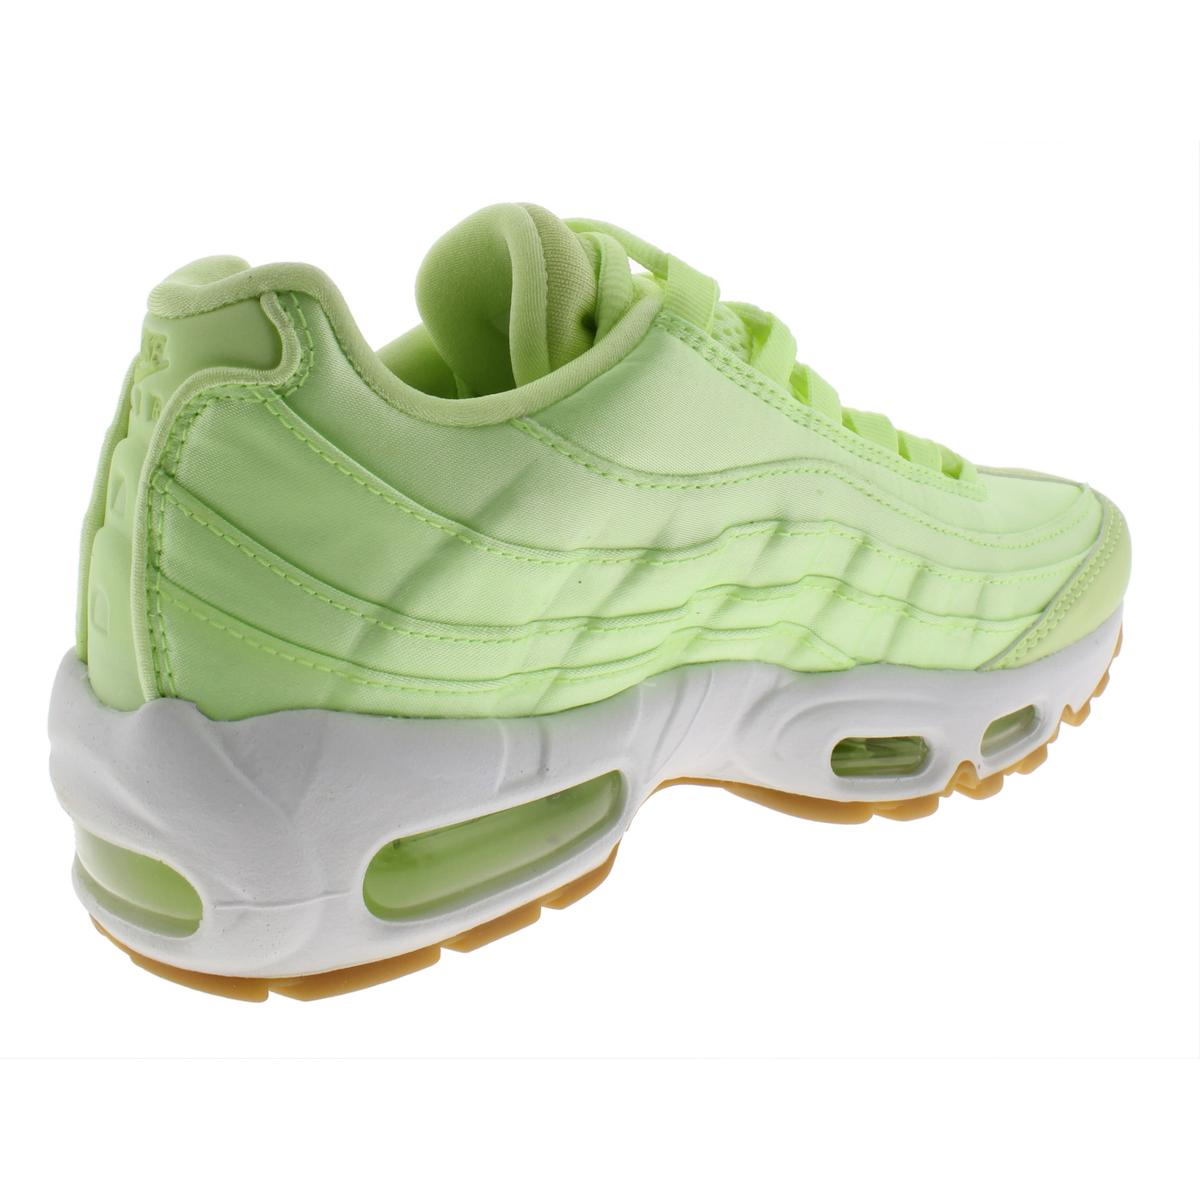 size 40 65608 bfa16 Nike Air Max 95 WQS Womens 919491-300 Liquid Lime Satin Running Shoes Size  7. About this product. Picture 1 of 4  Picture 2 of 4  Picture 3 of 4   Picture 4 ...